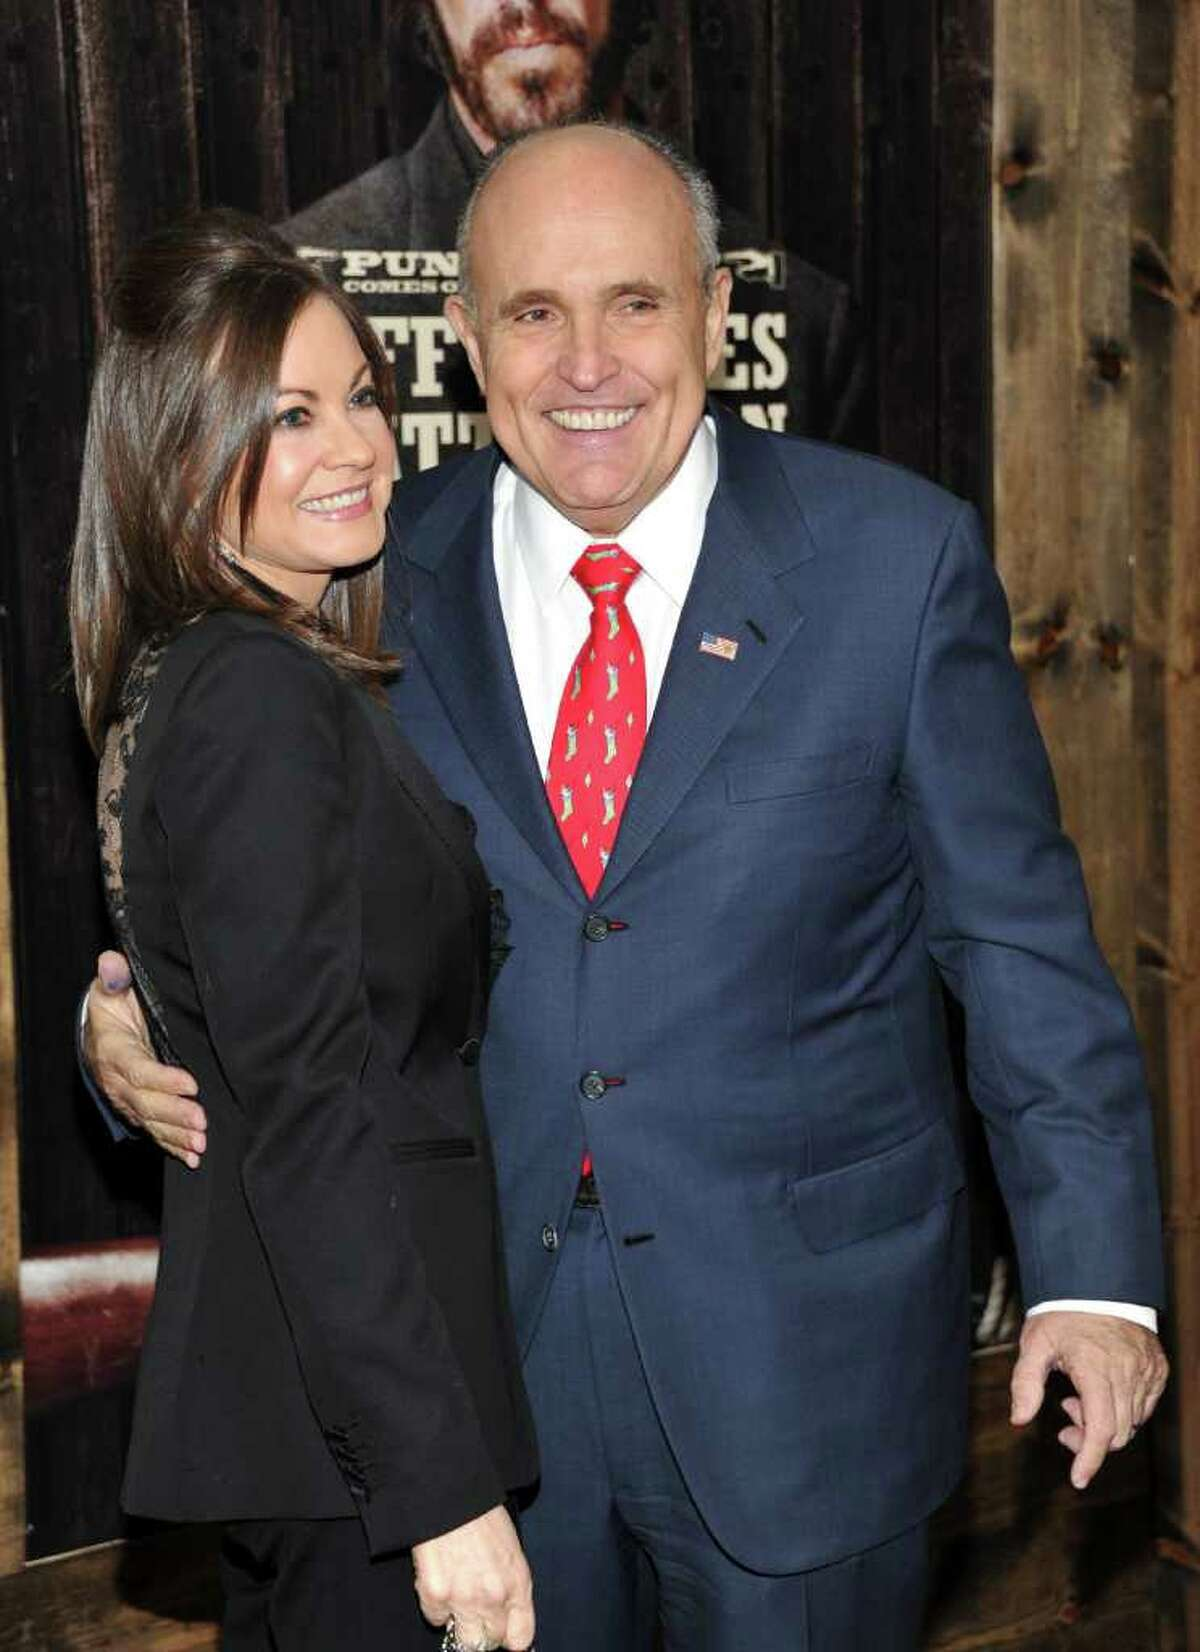 Rudolph Giuliani and wife Judith attend the premiere of 'True Grit' at the Ziegfeld Theatre on Tuesday, Dec. 14, 2010 in New York. (AP Photo/Evan Agostini)